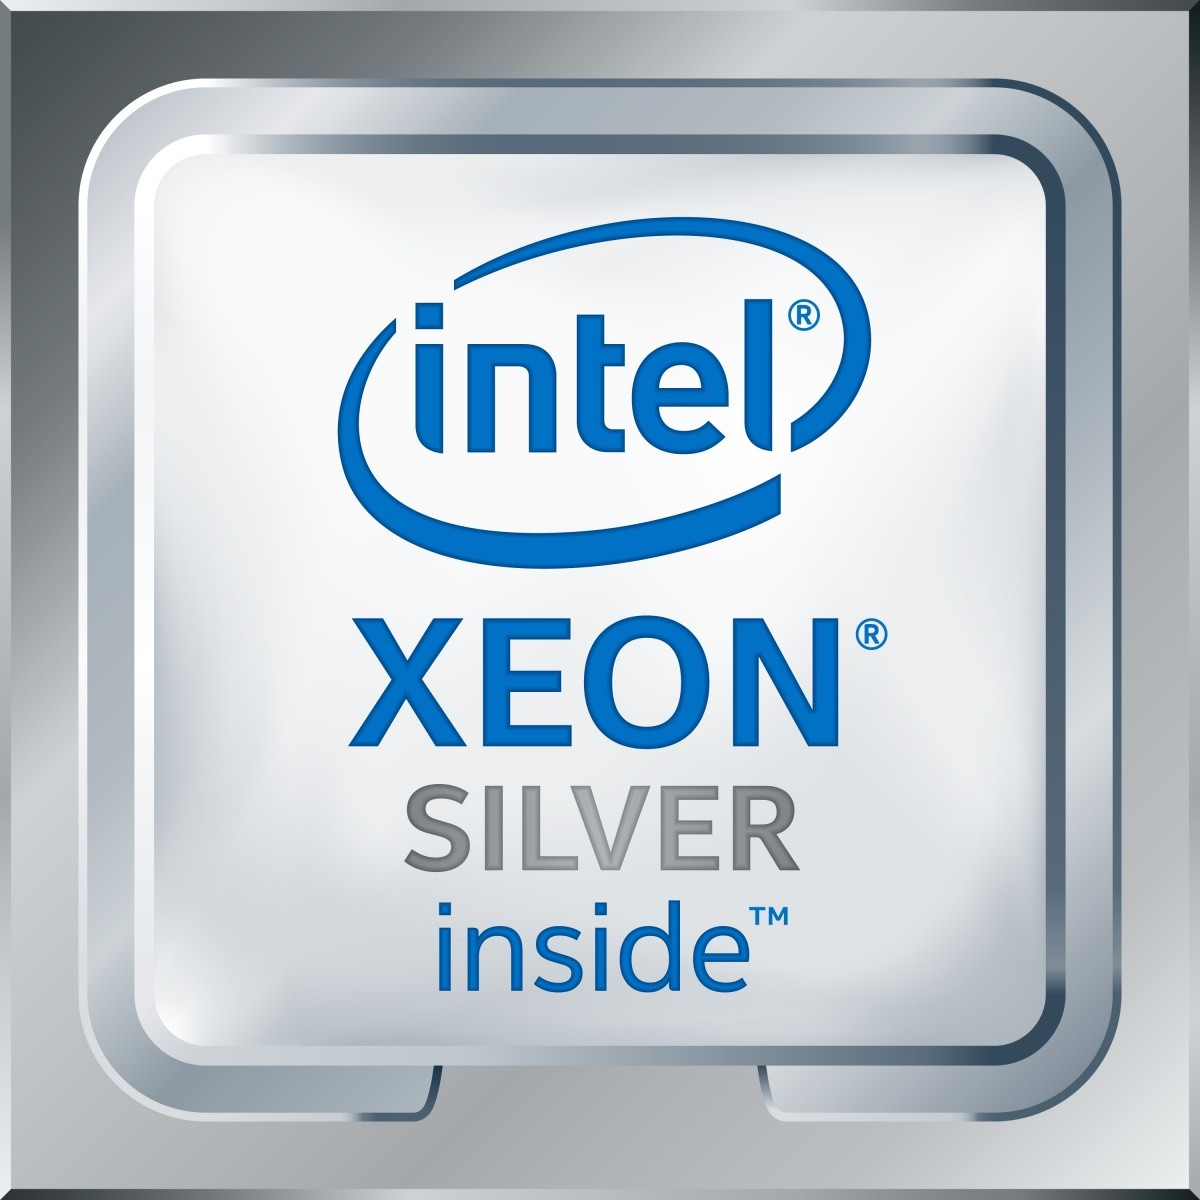 Xeon Silver 4110 BOX 8C, 2.1 GHz, 11M cache, DDR4 up to 2400 MHz85W TDP